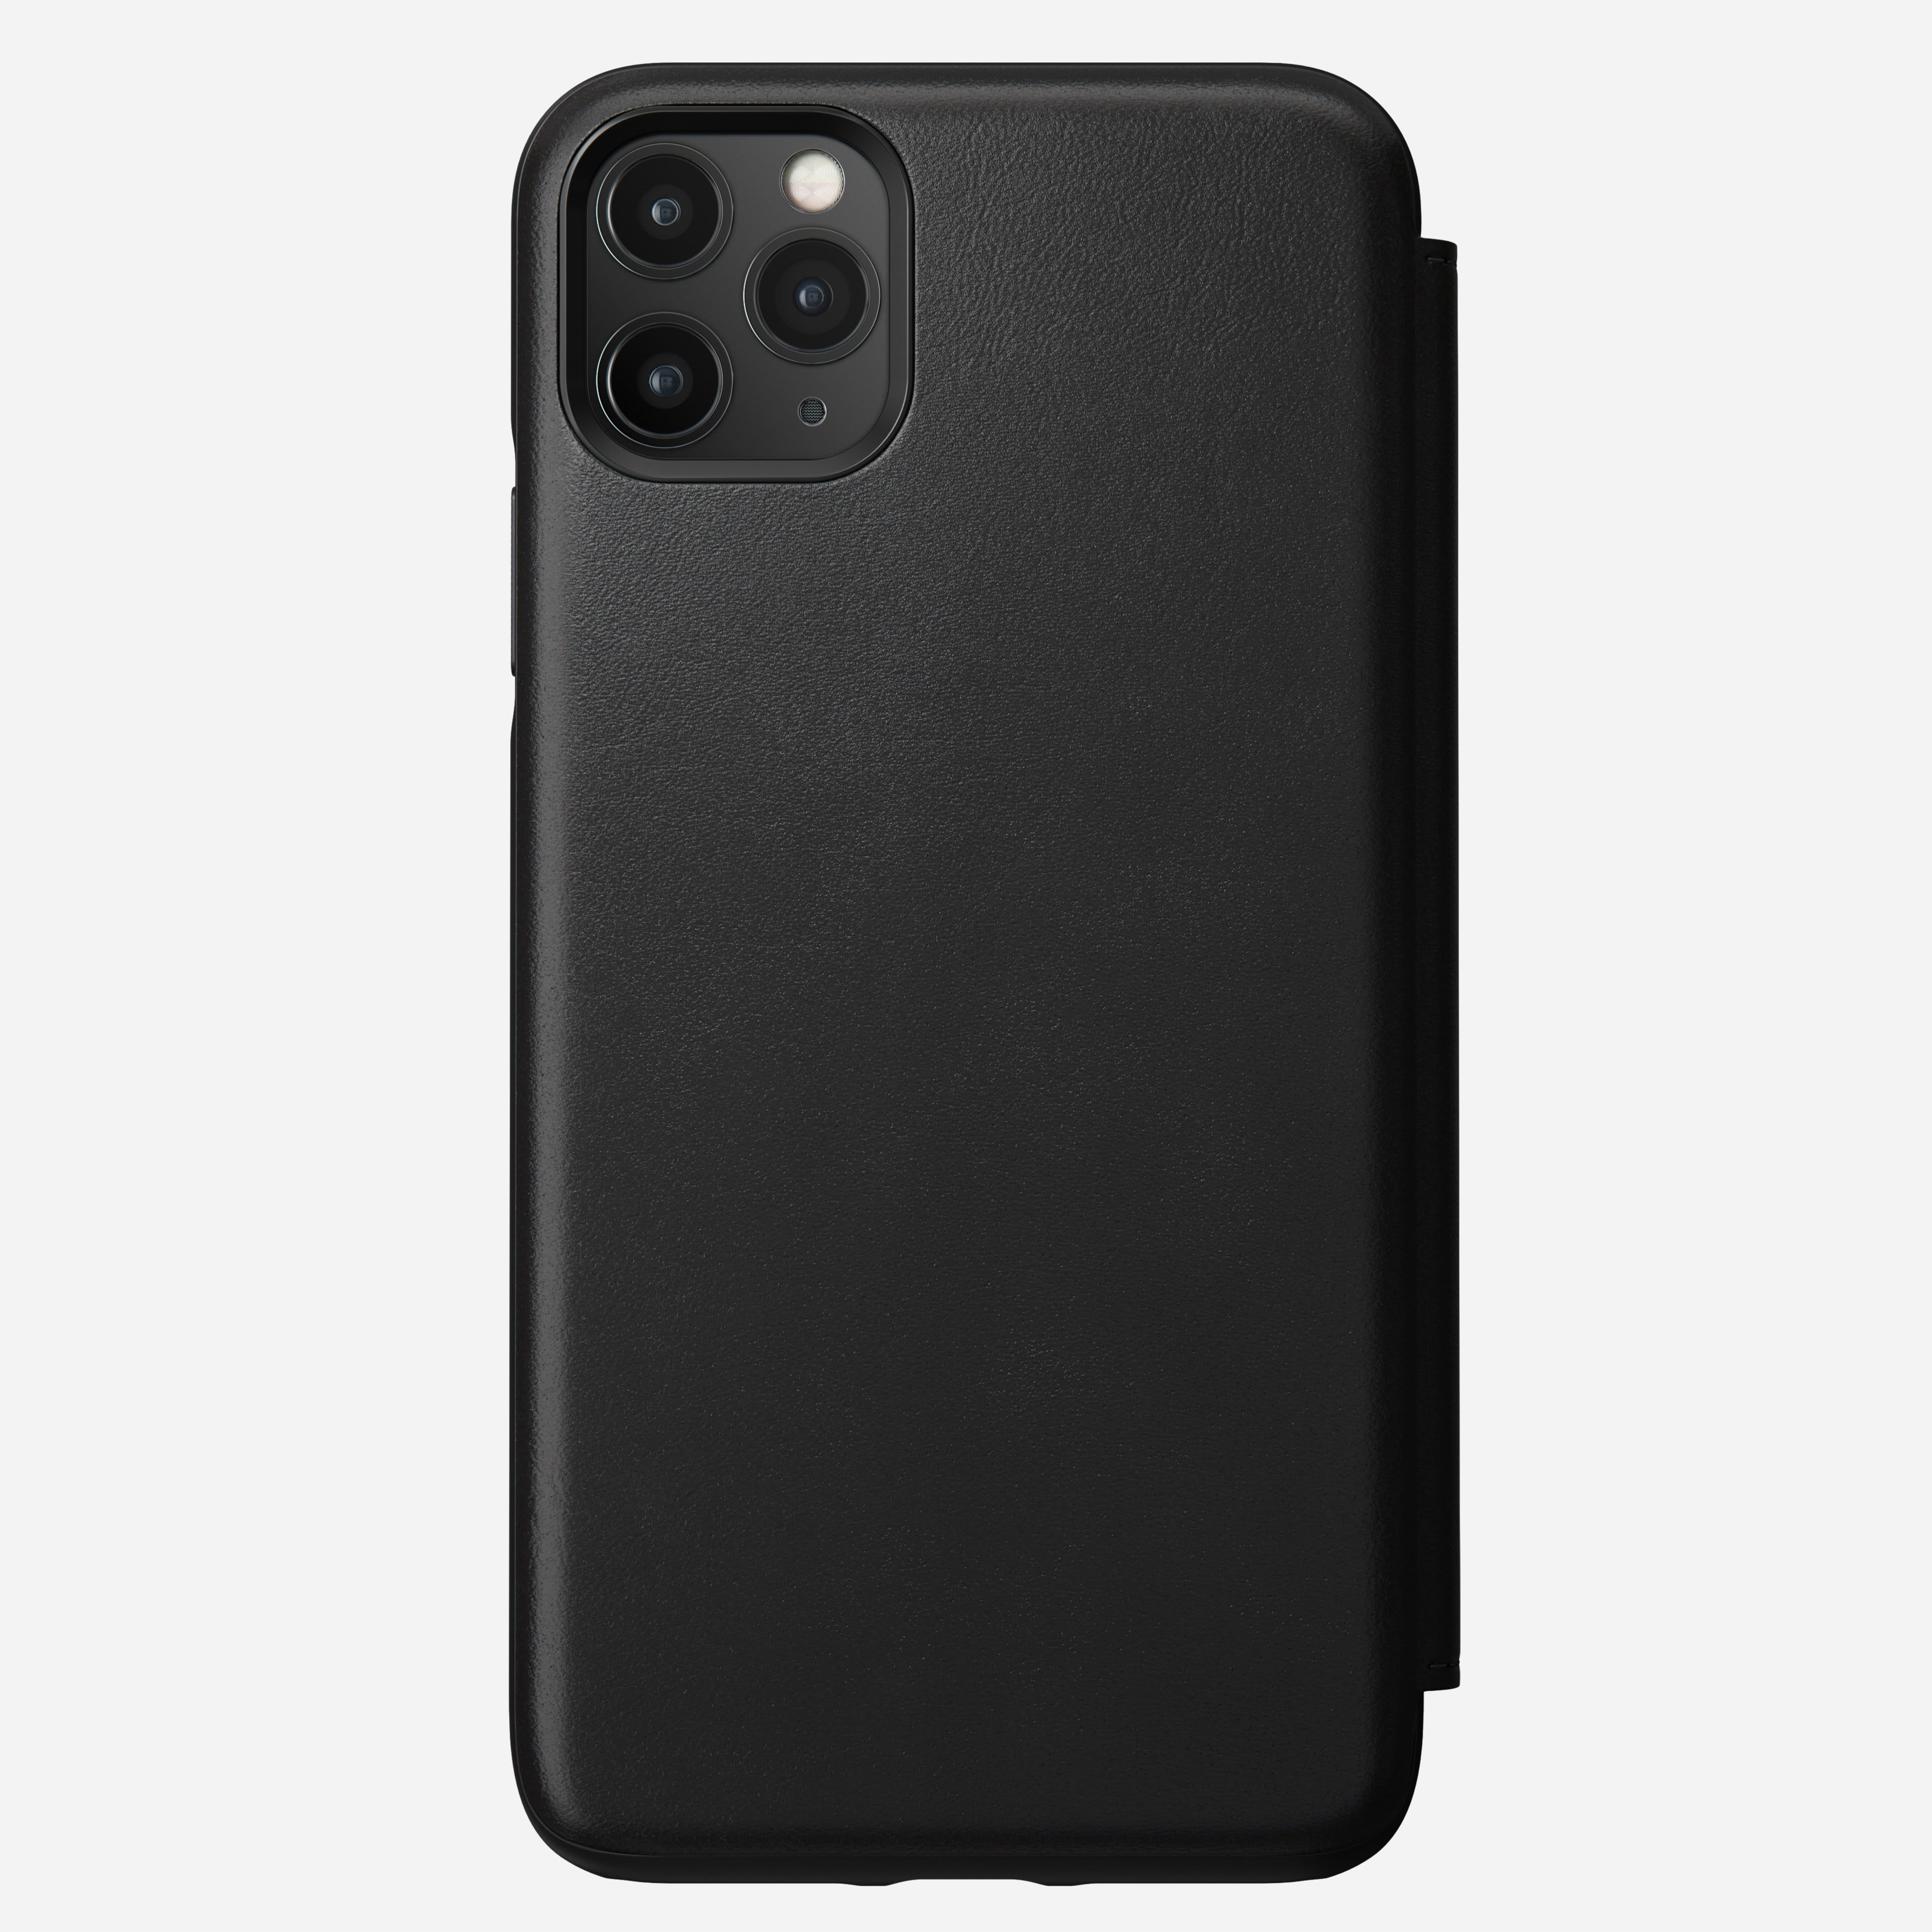 Rugged tri folio black iphone 11 pro max